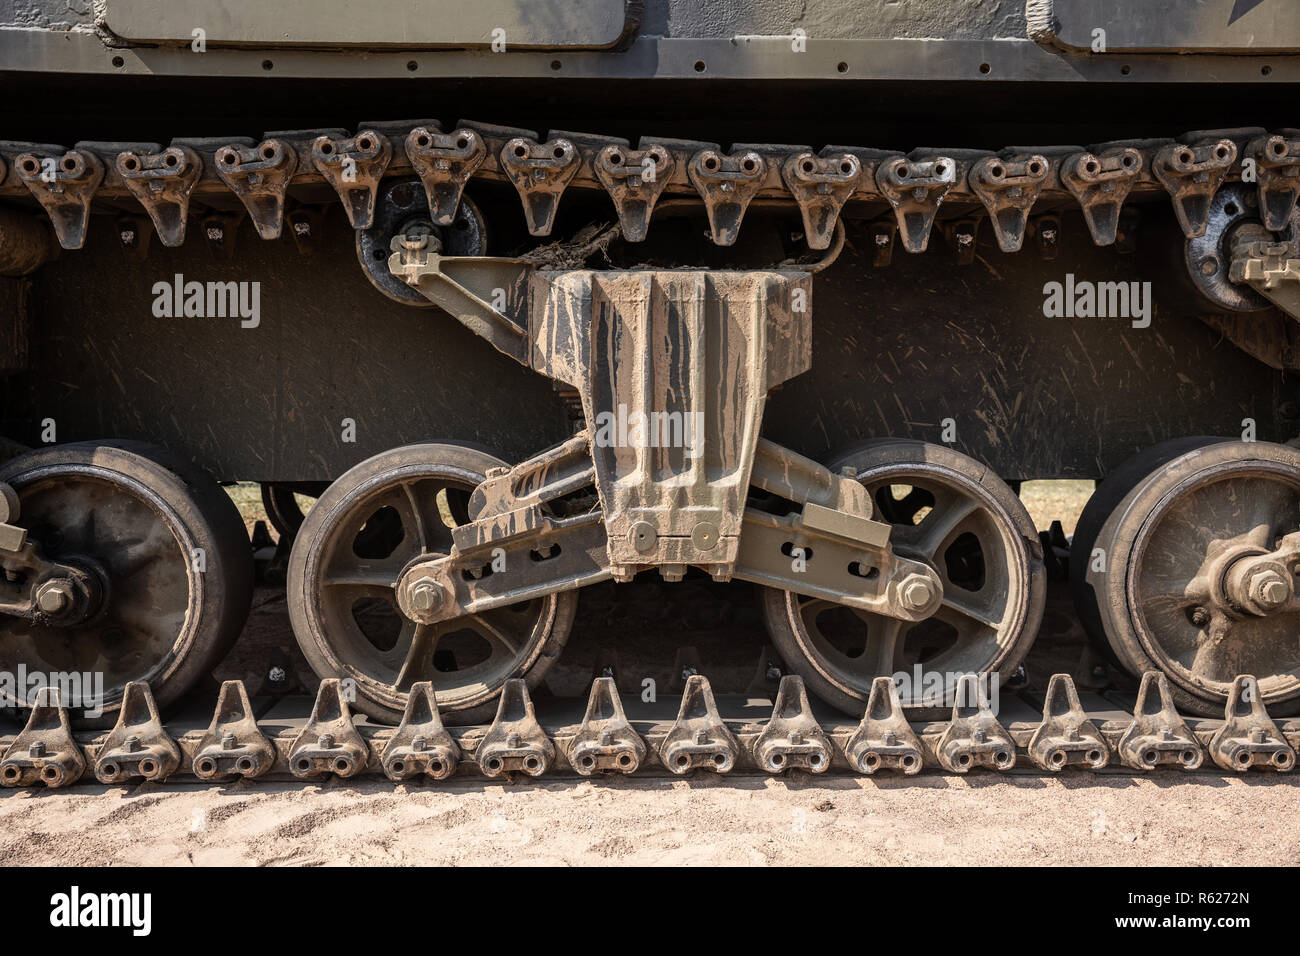 Continuous track from a green military tank of the World War II - Stock Image